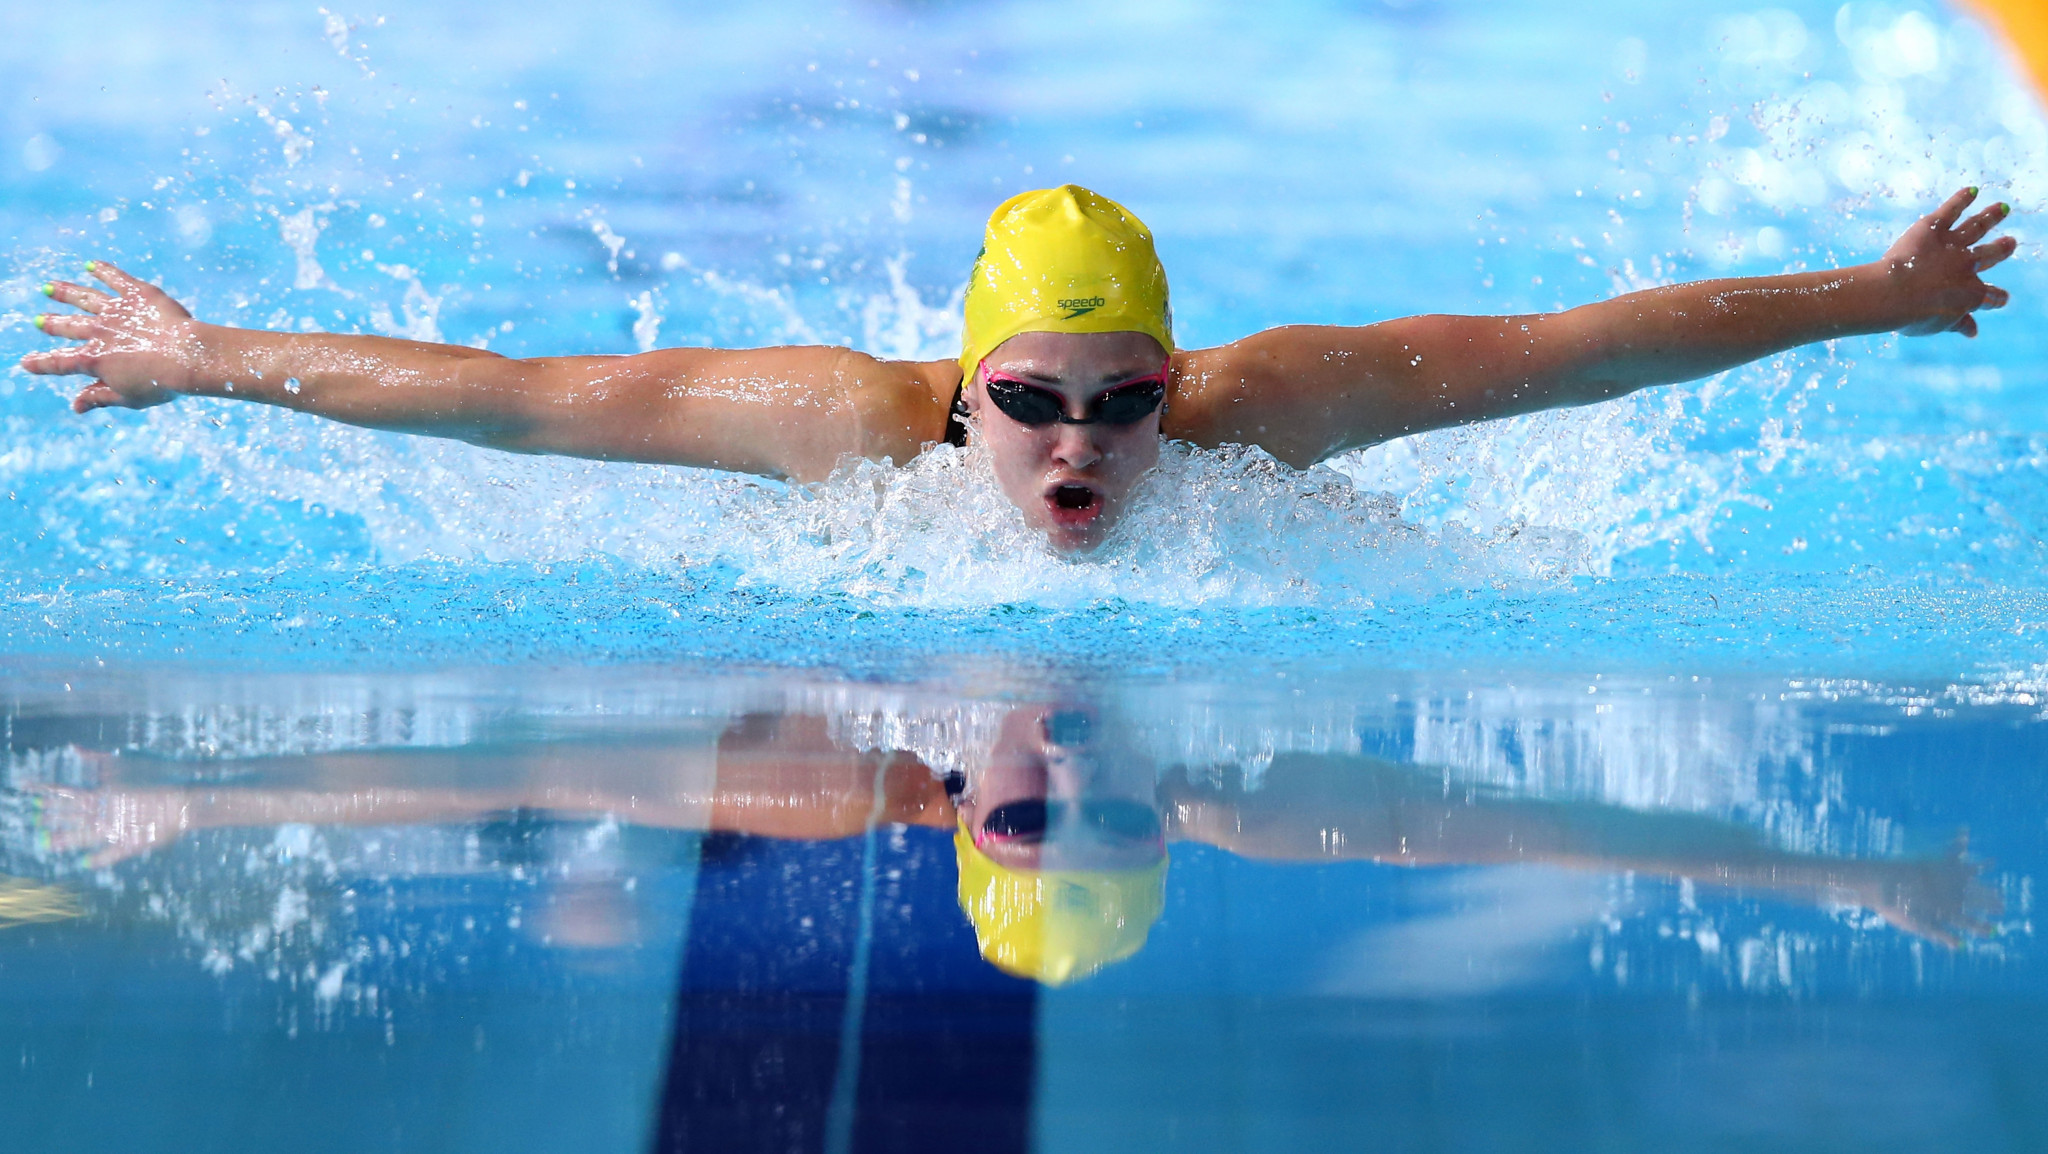 Energy Standard and DC Trident to take part in first match of 2021 International Swimming League